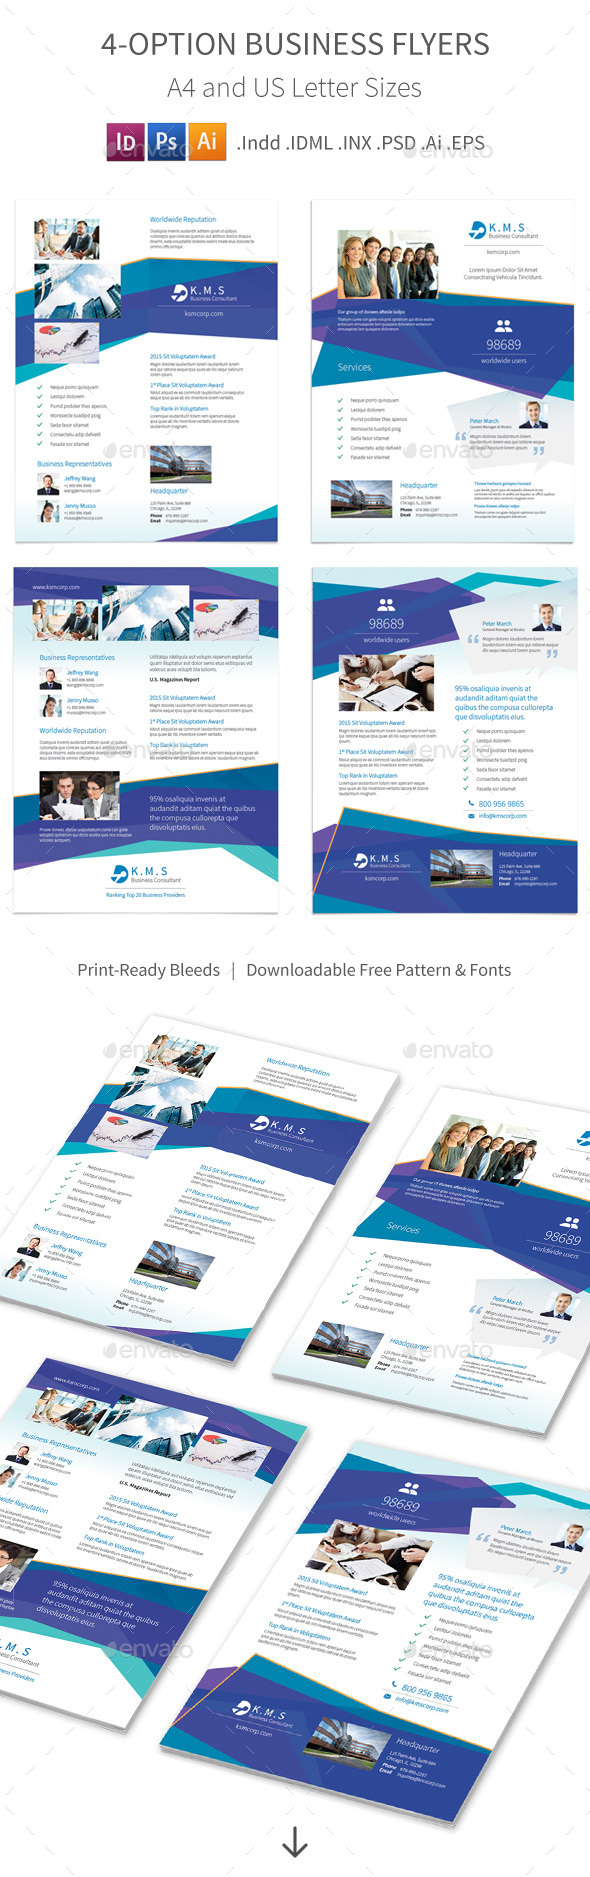 Business Consulting Services Flyers – 4 Options - Corporate Flyers